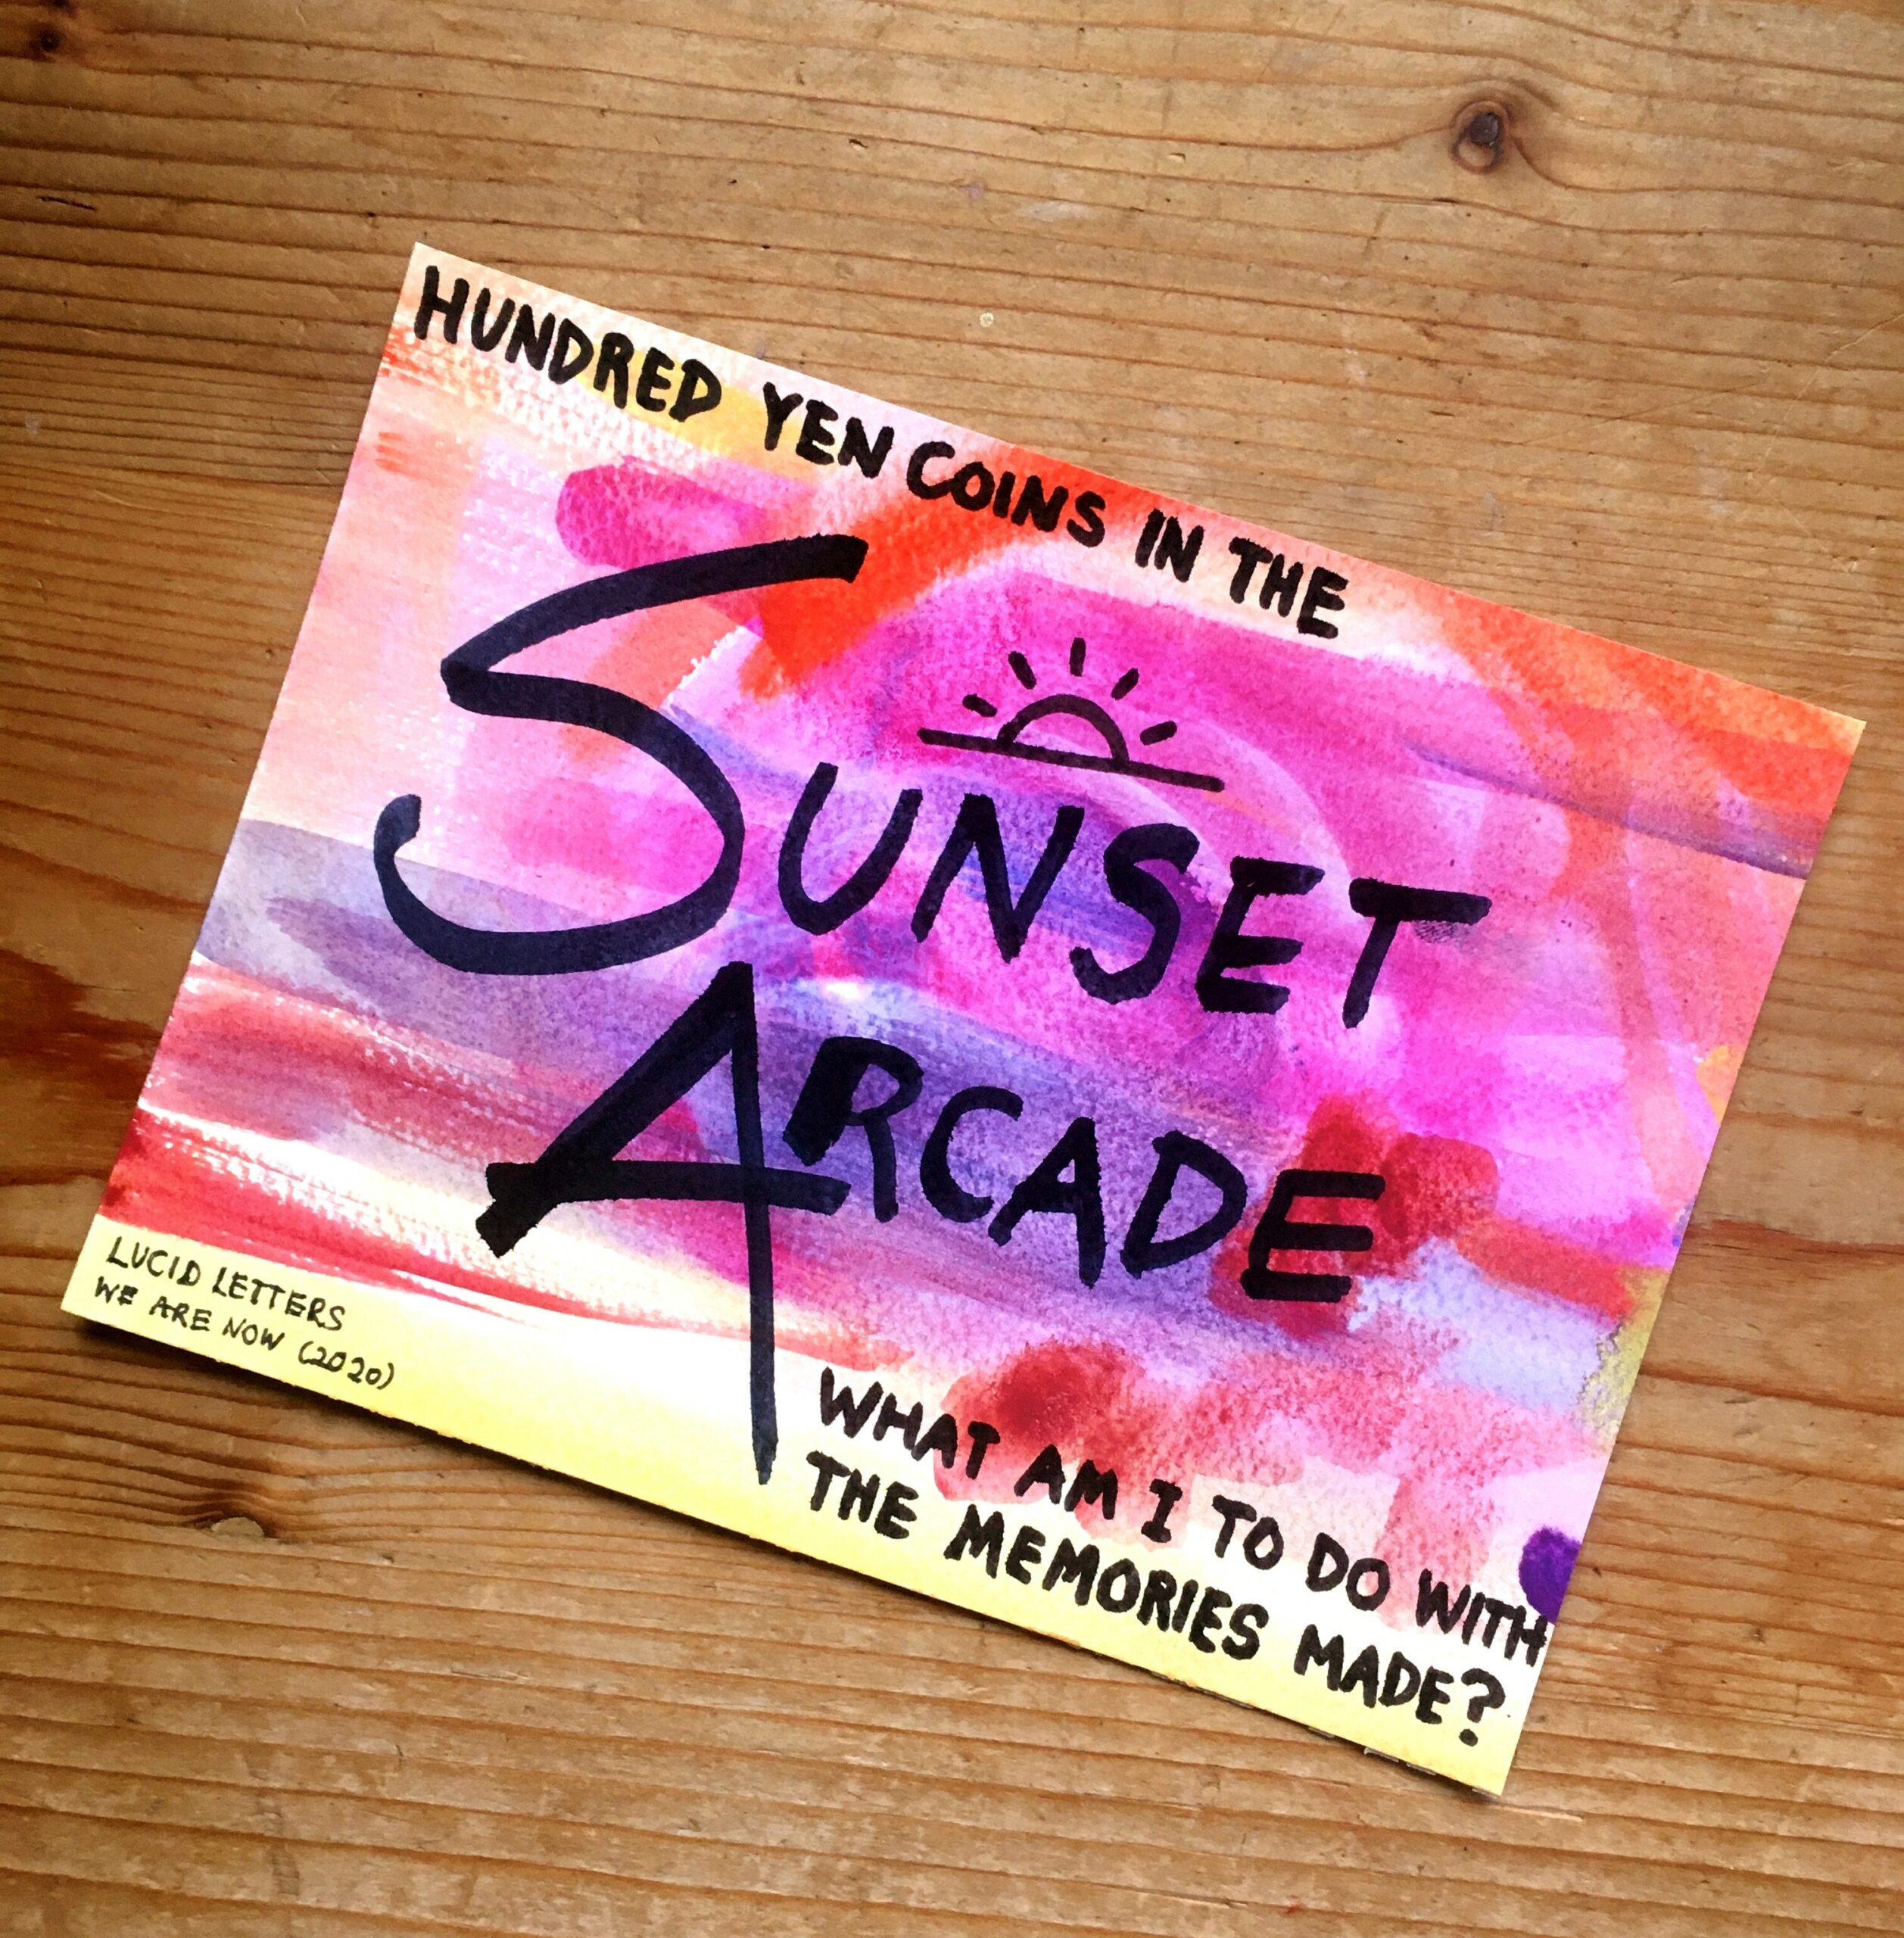 Sunset Arcade lyric artwork by Lucid Letters